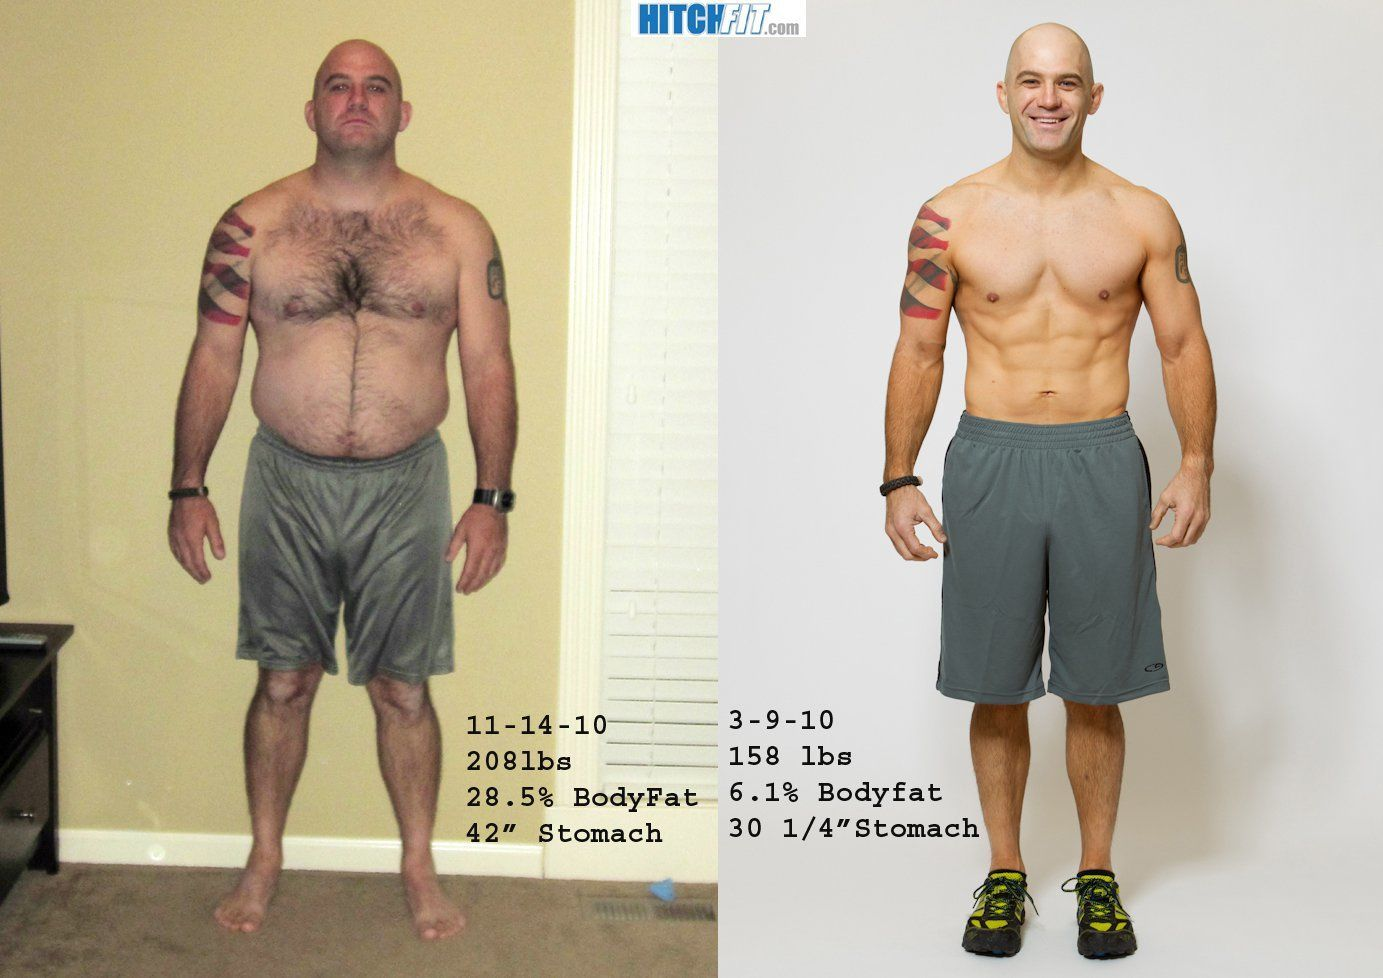 male, Lose Weight Feel Great, over 50 pounds lost, more than 20% body ...